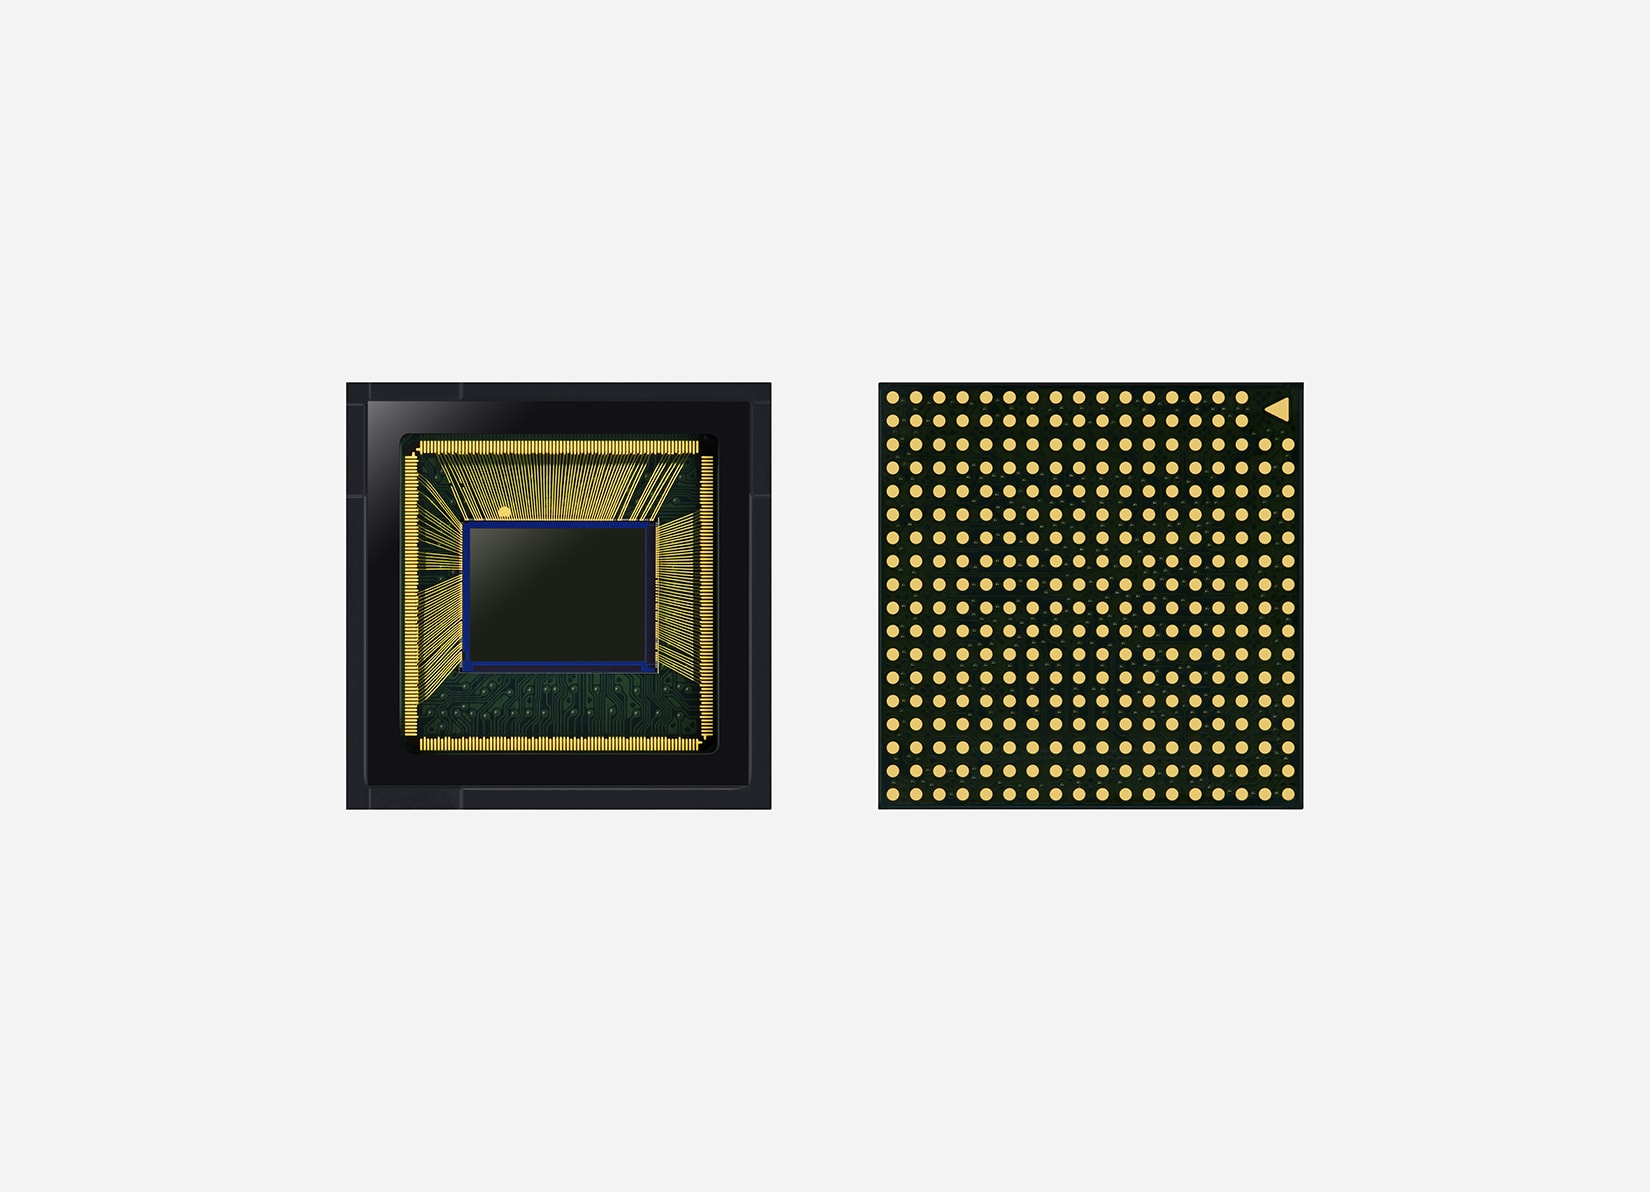 Samsung 64-Mp smartphone camera sensor